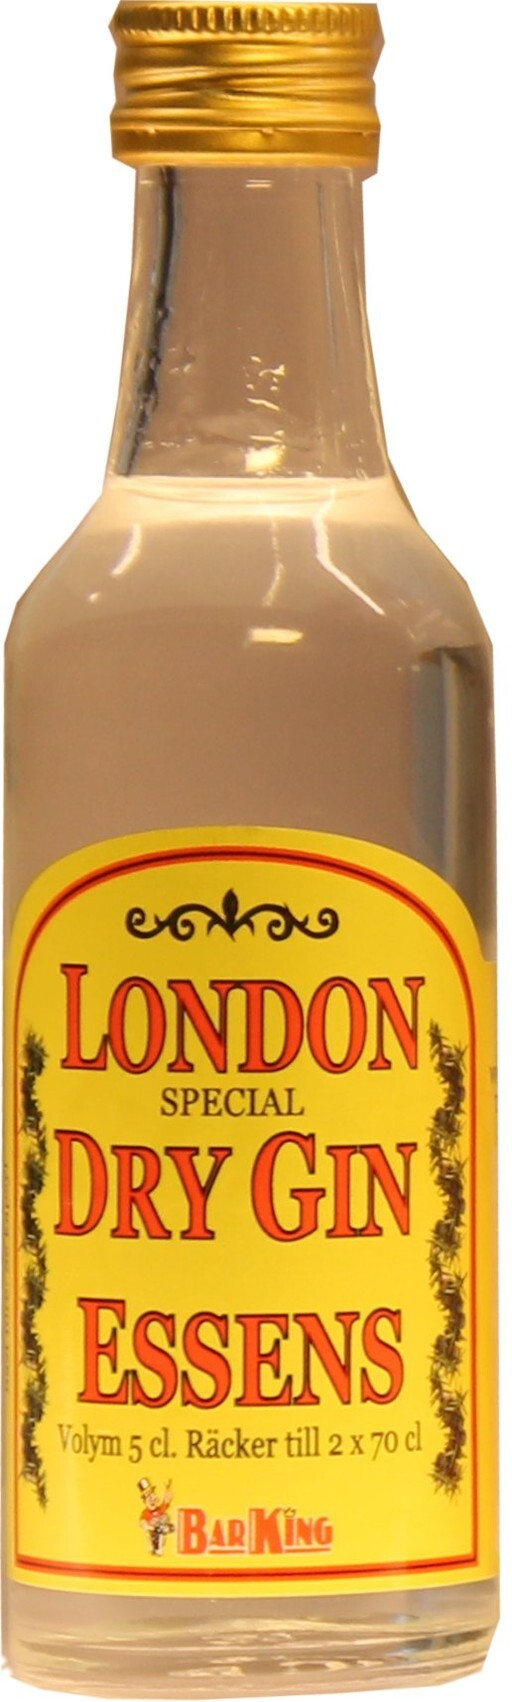 London Dry Gin Essens 5 cl